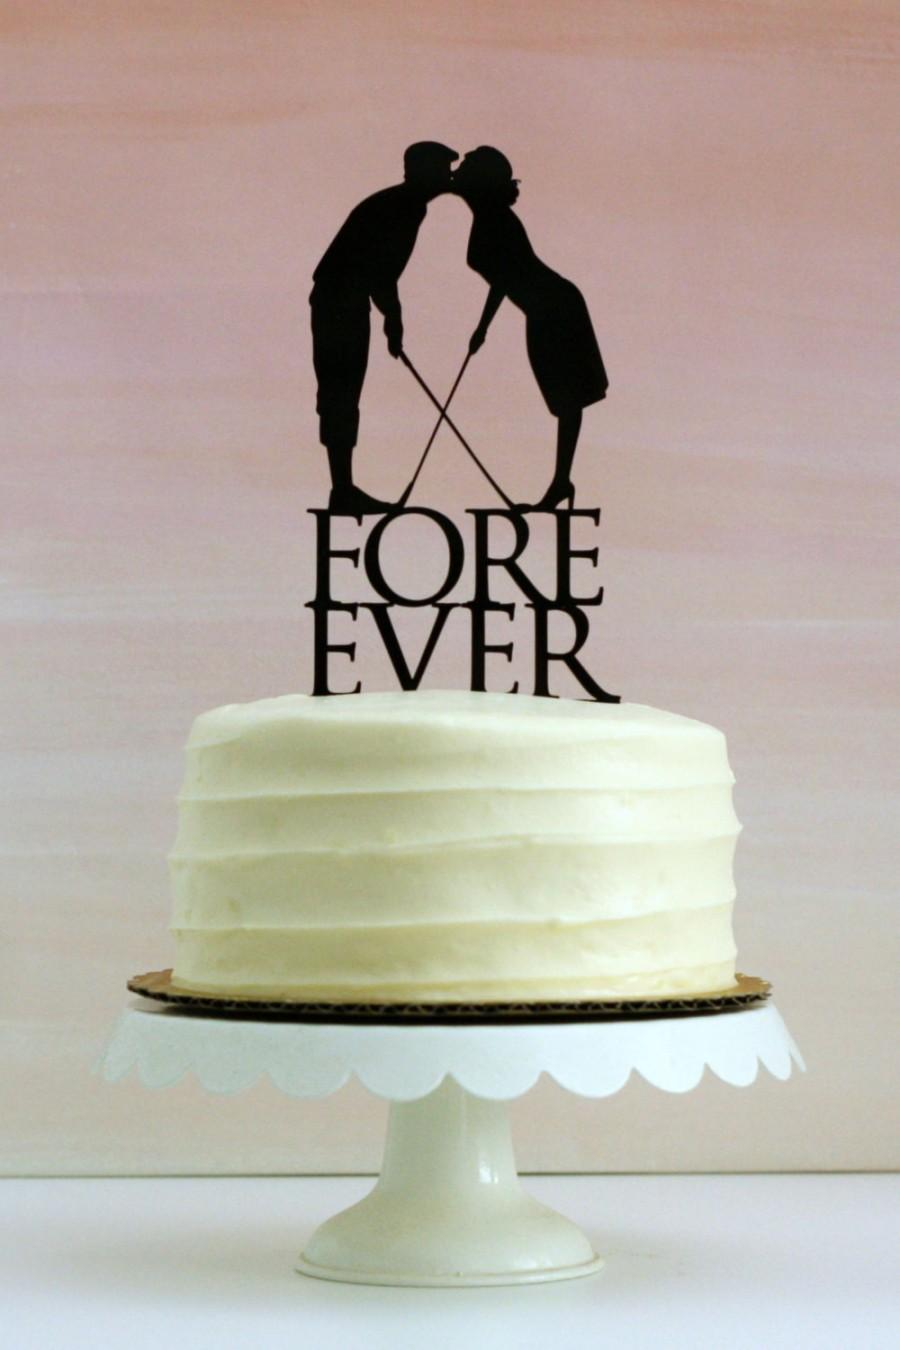 Fore Ever Golf Wedding Cake Topper With Silhouettes - MADE TO ORDER ...